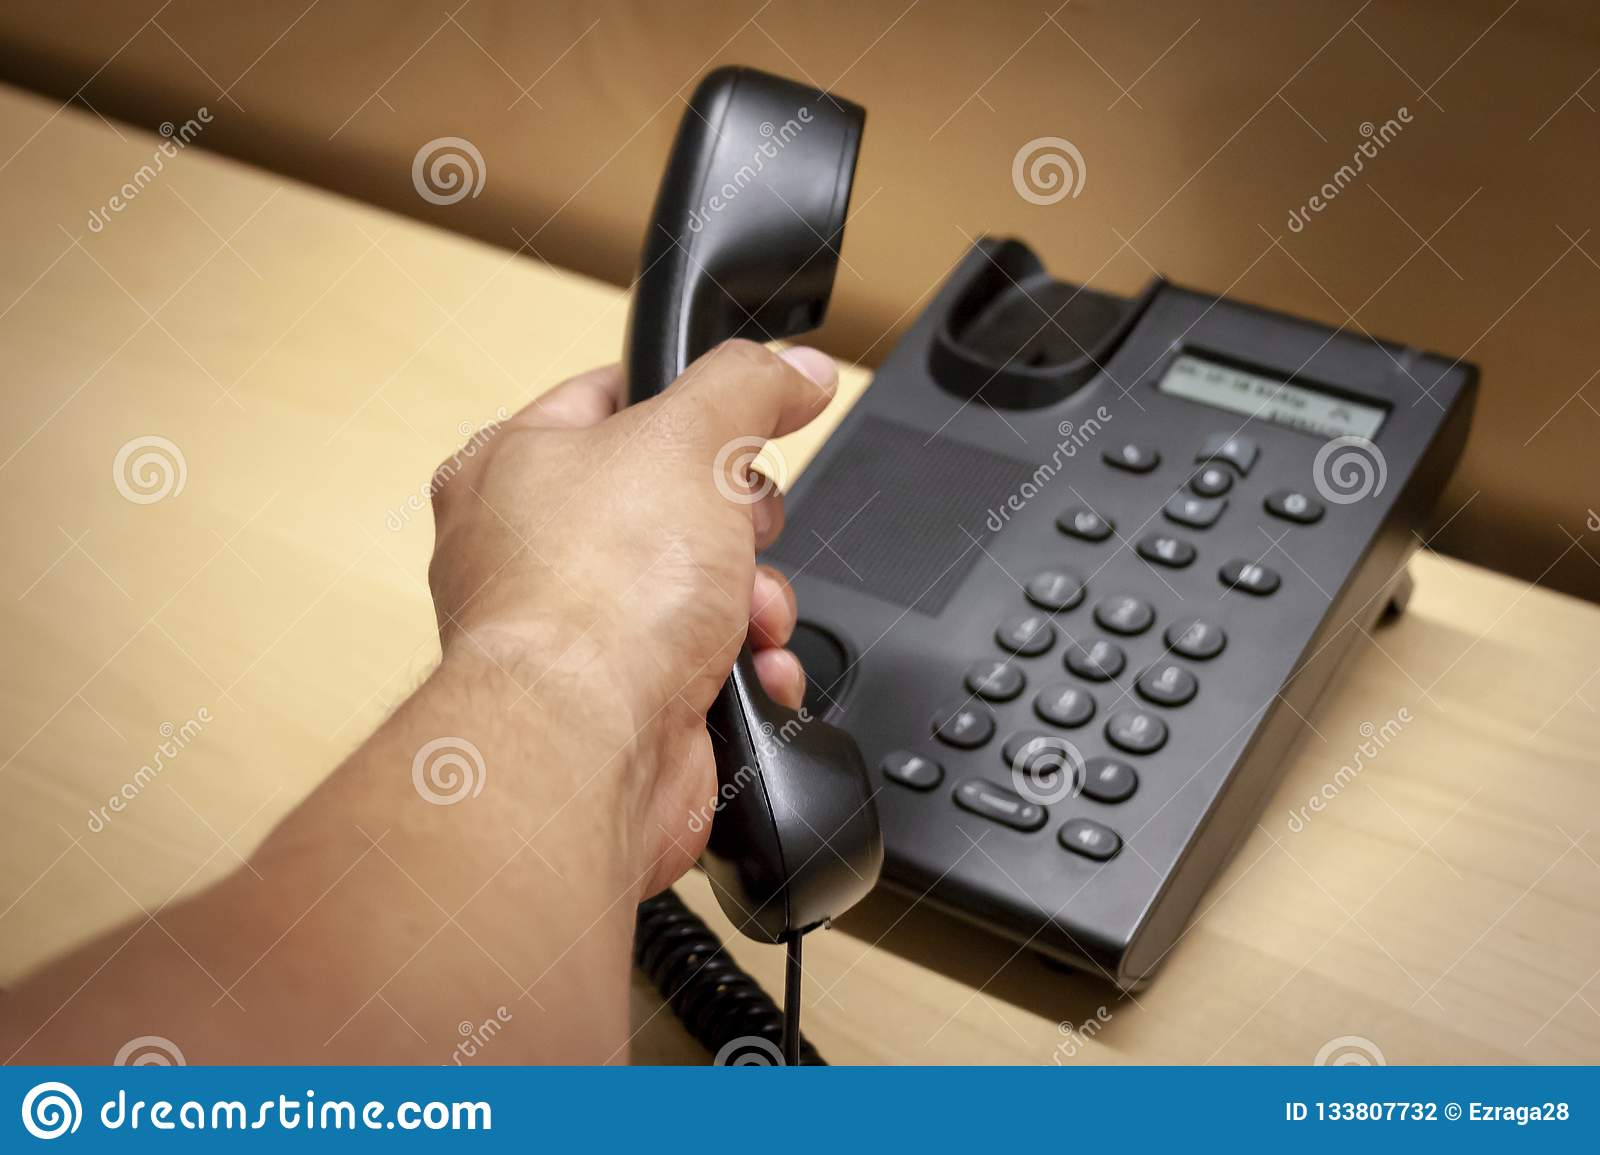 Answering a call from a black phone